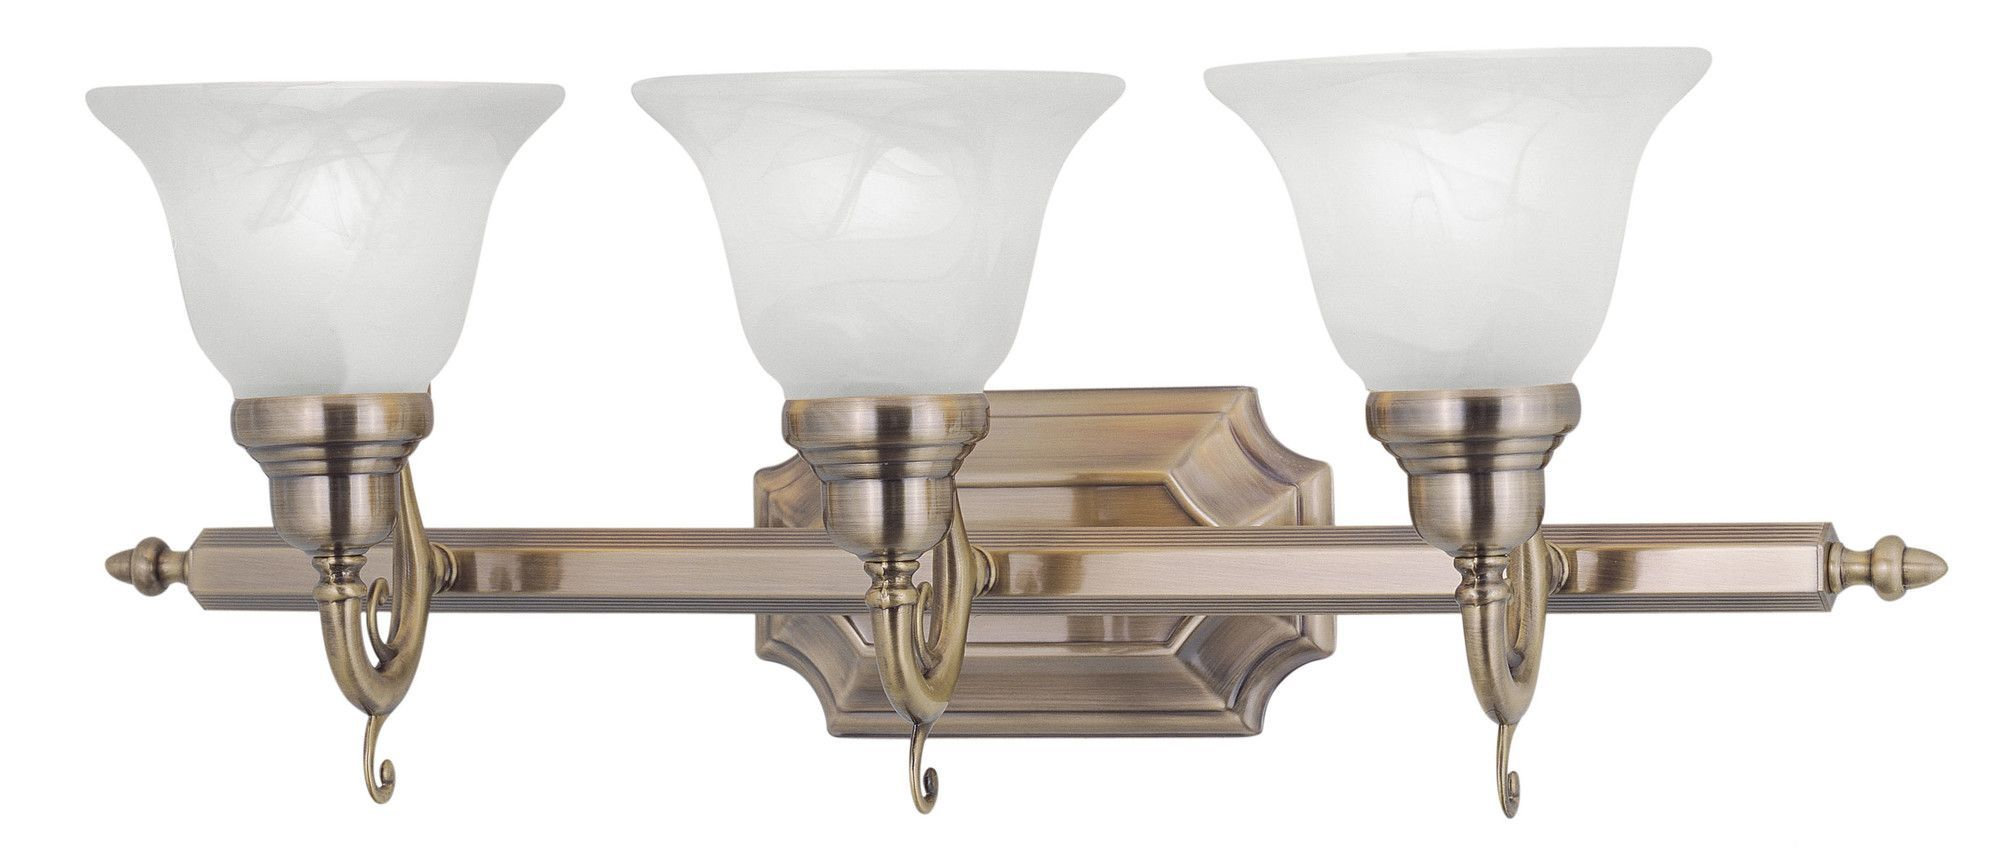 French Regency 3 Light Bath Vanity Light